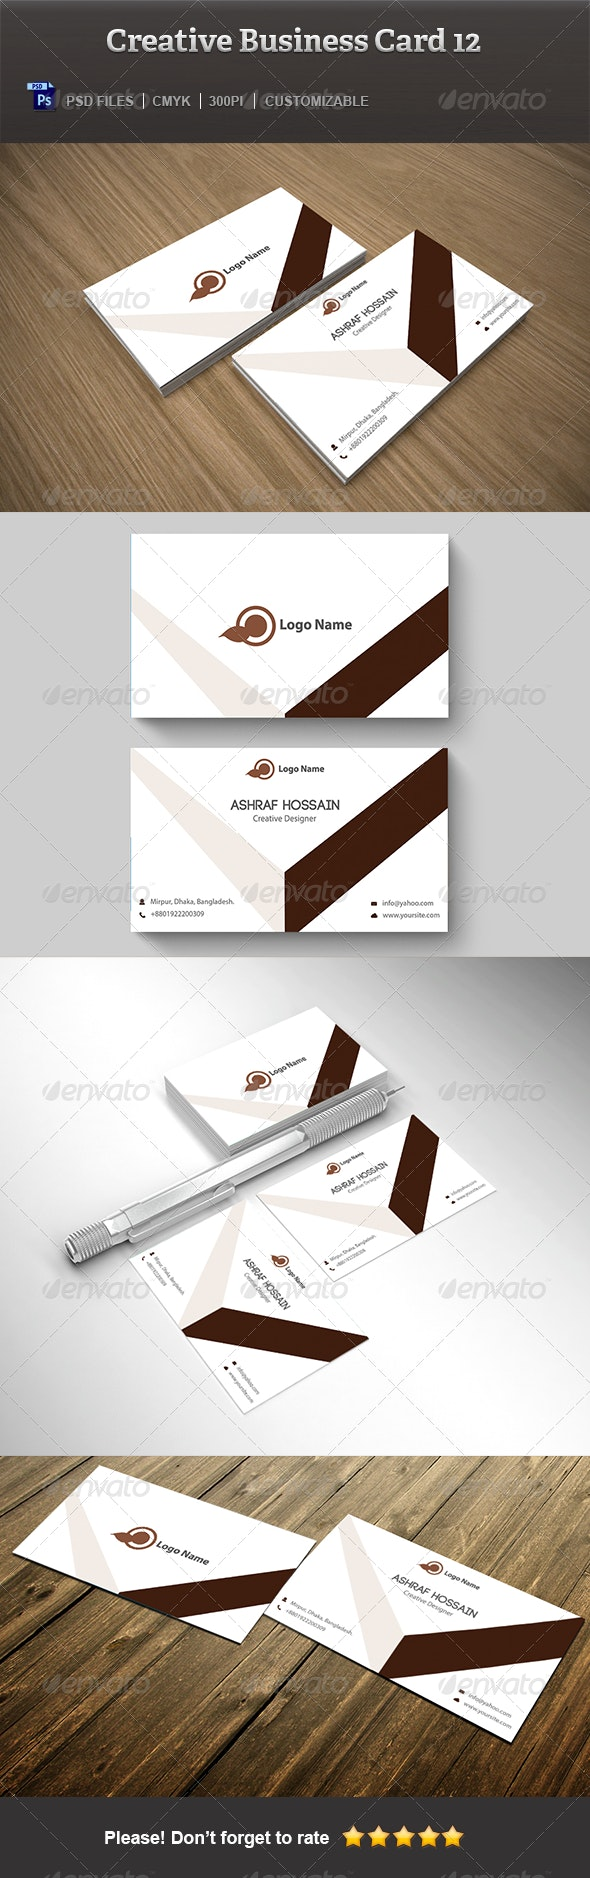 Creative Business Card 12 - Corporate Business Cards